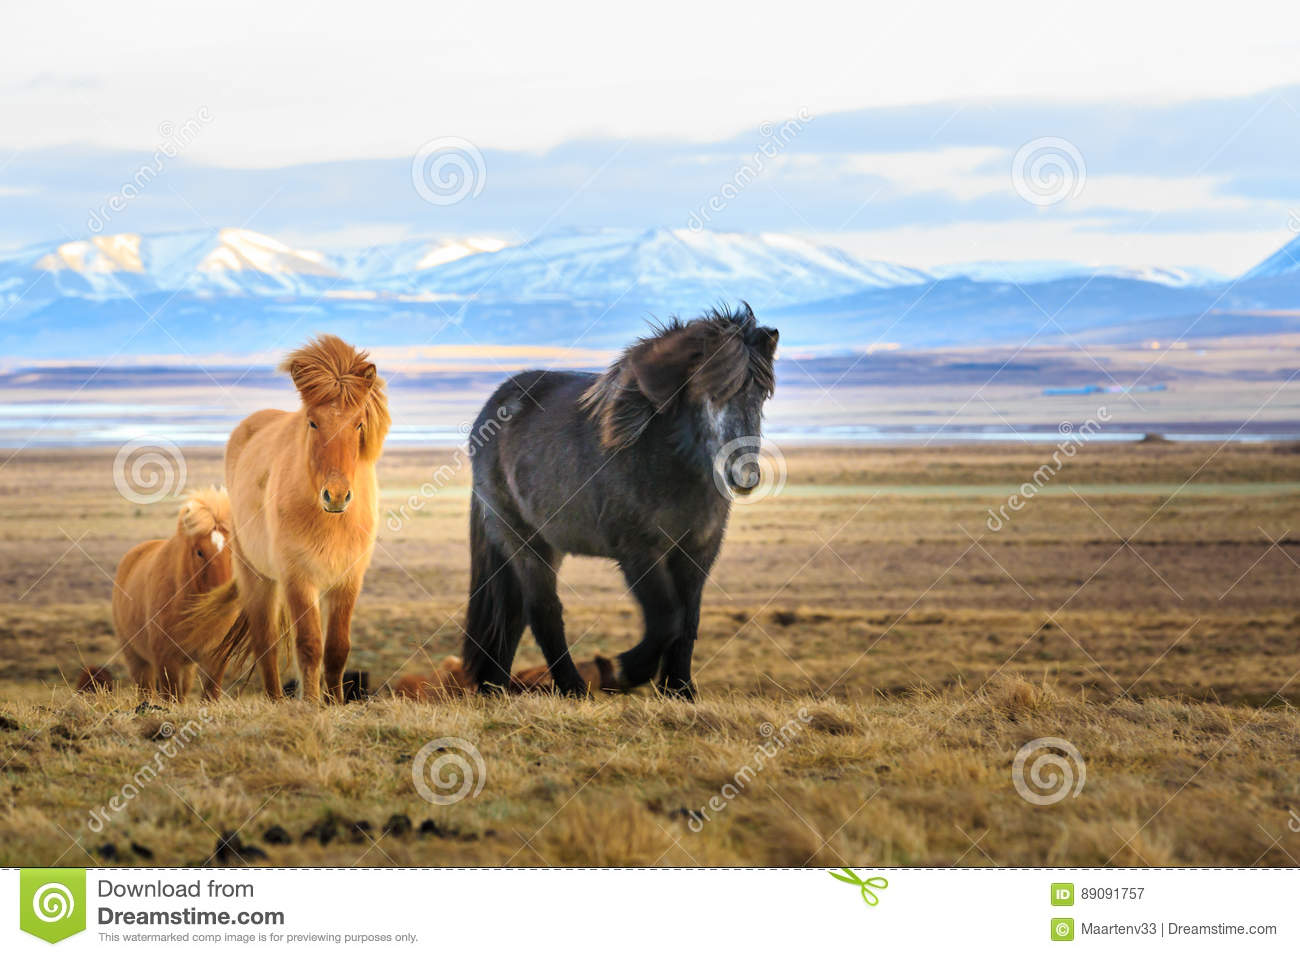 Icelandic horses looking at the viewer in front of snow covered mountains and a lake